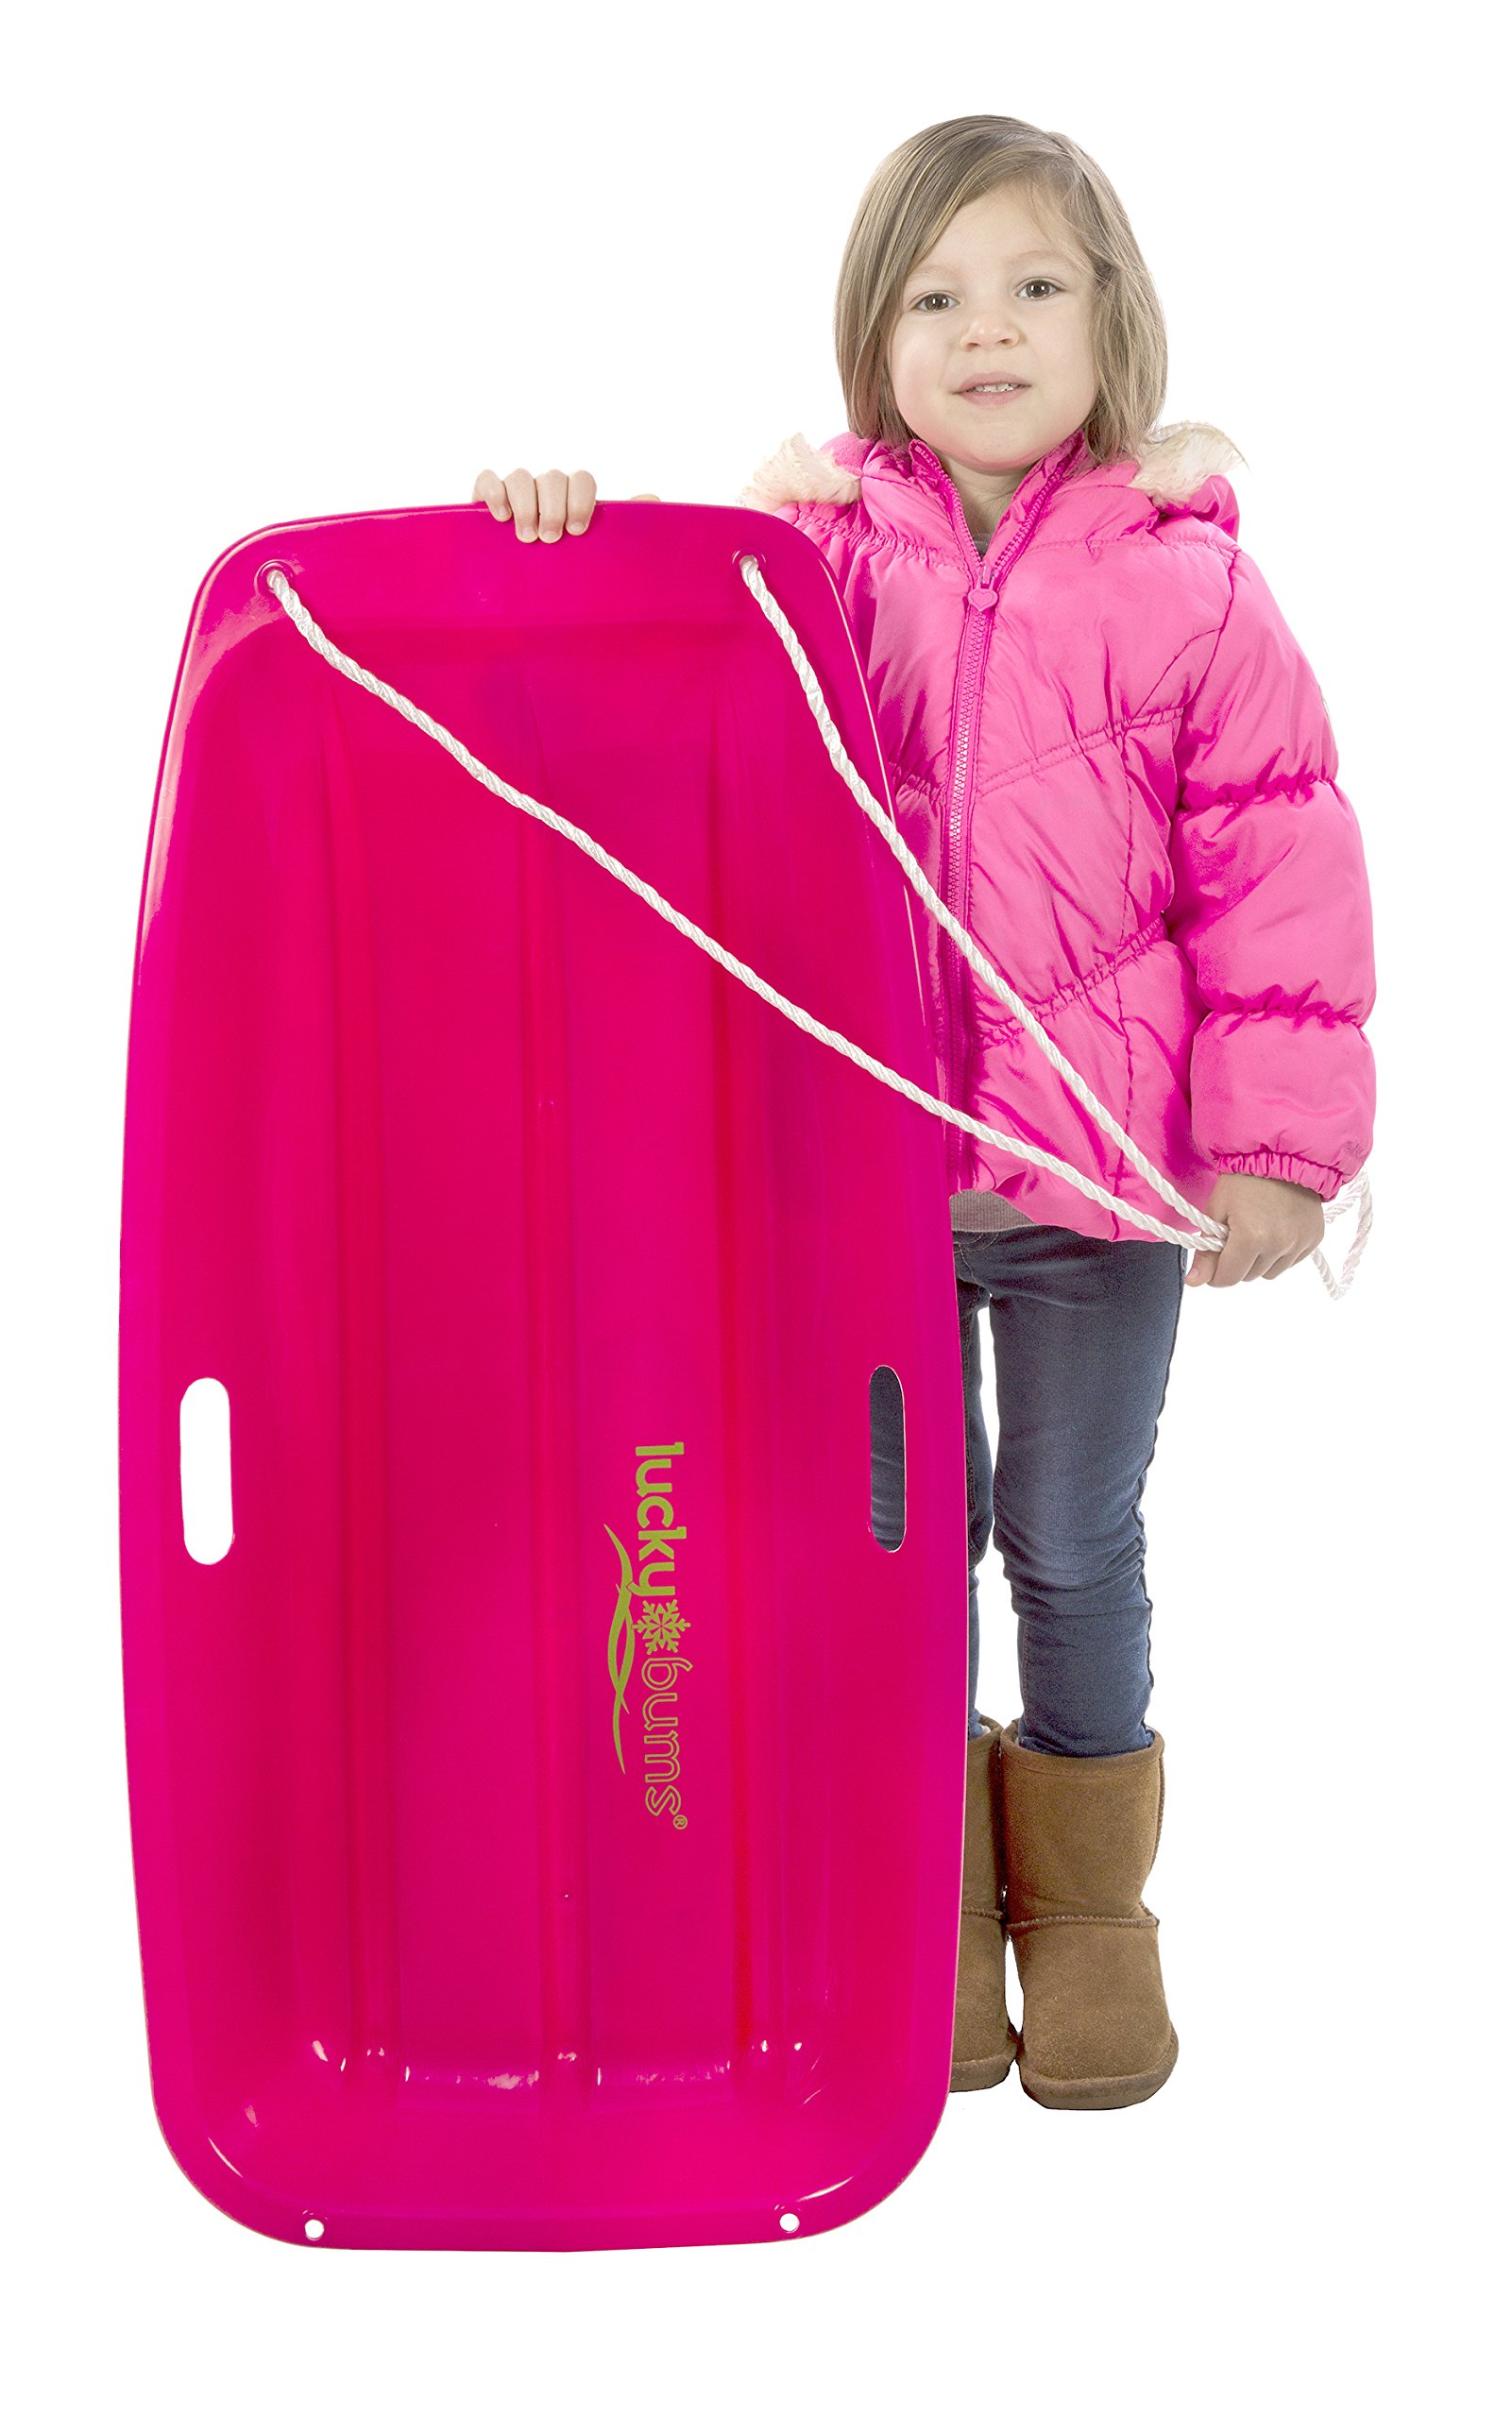 Snow Sled Kids Winter Toboggan Sled, 33-inch, Pink by Lucky Bums (Image #2)